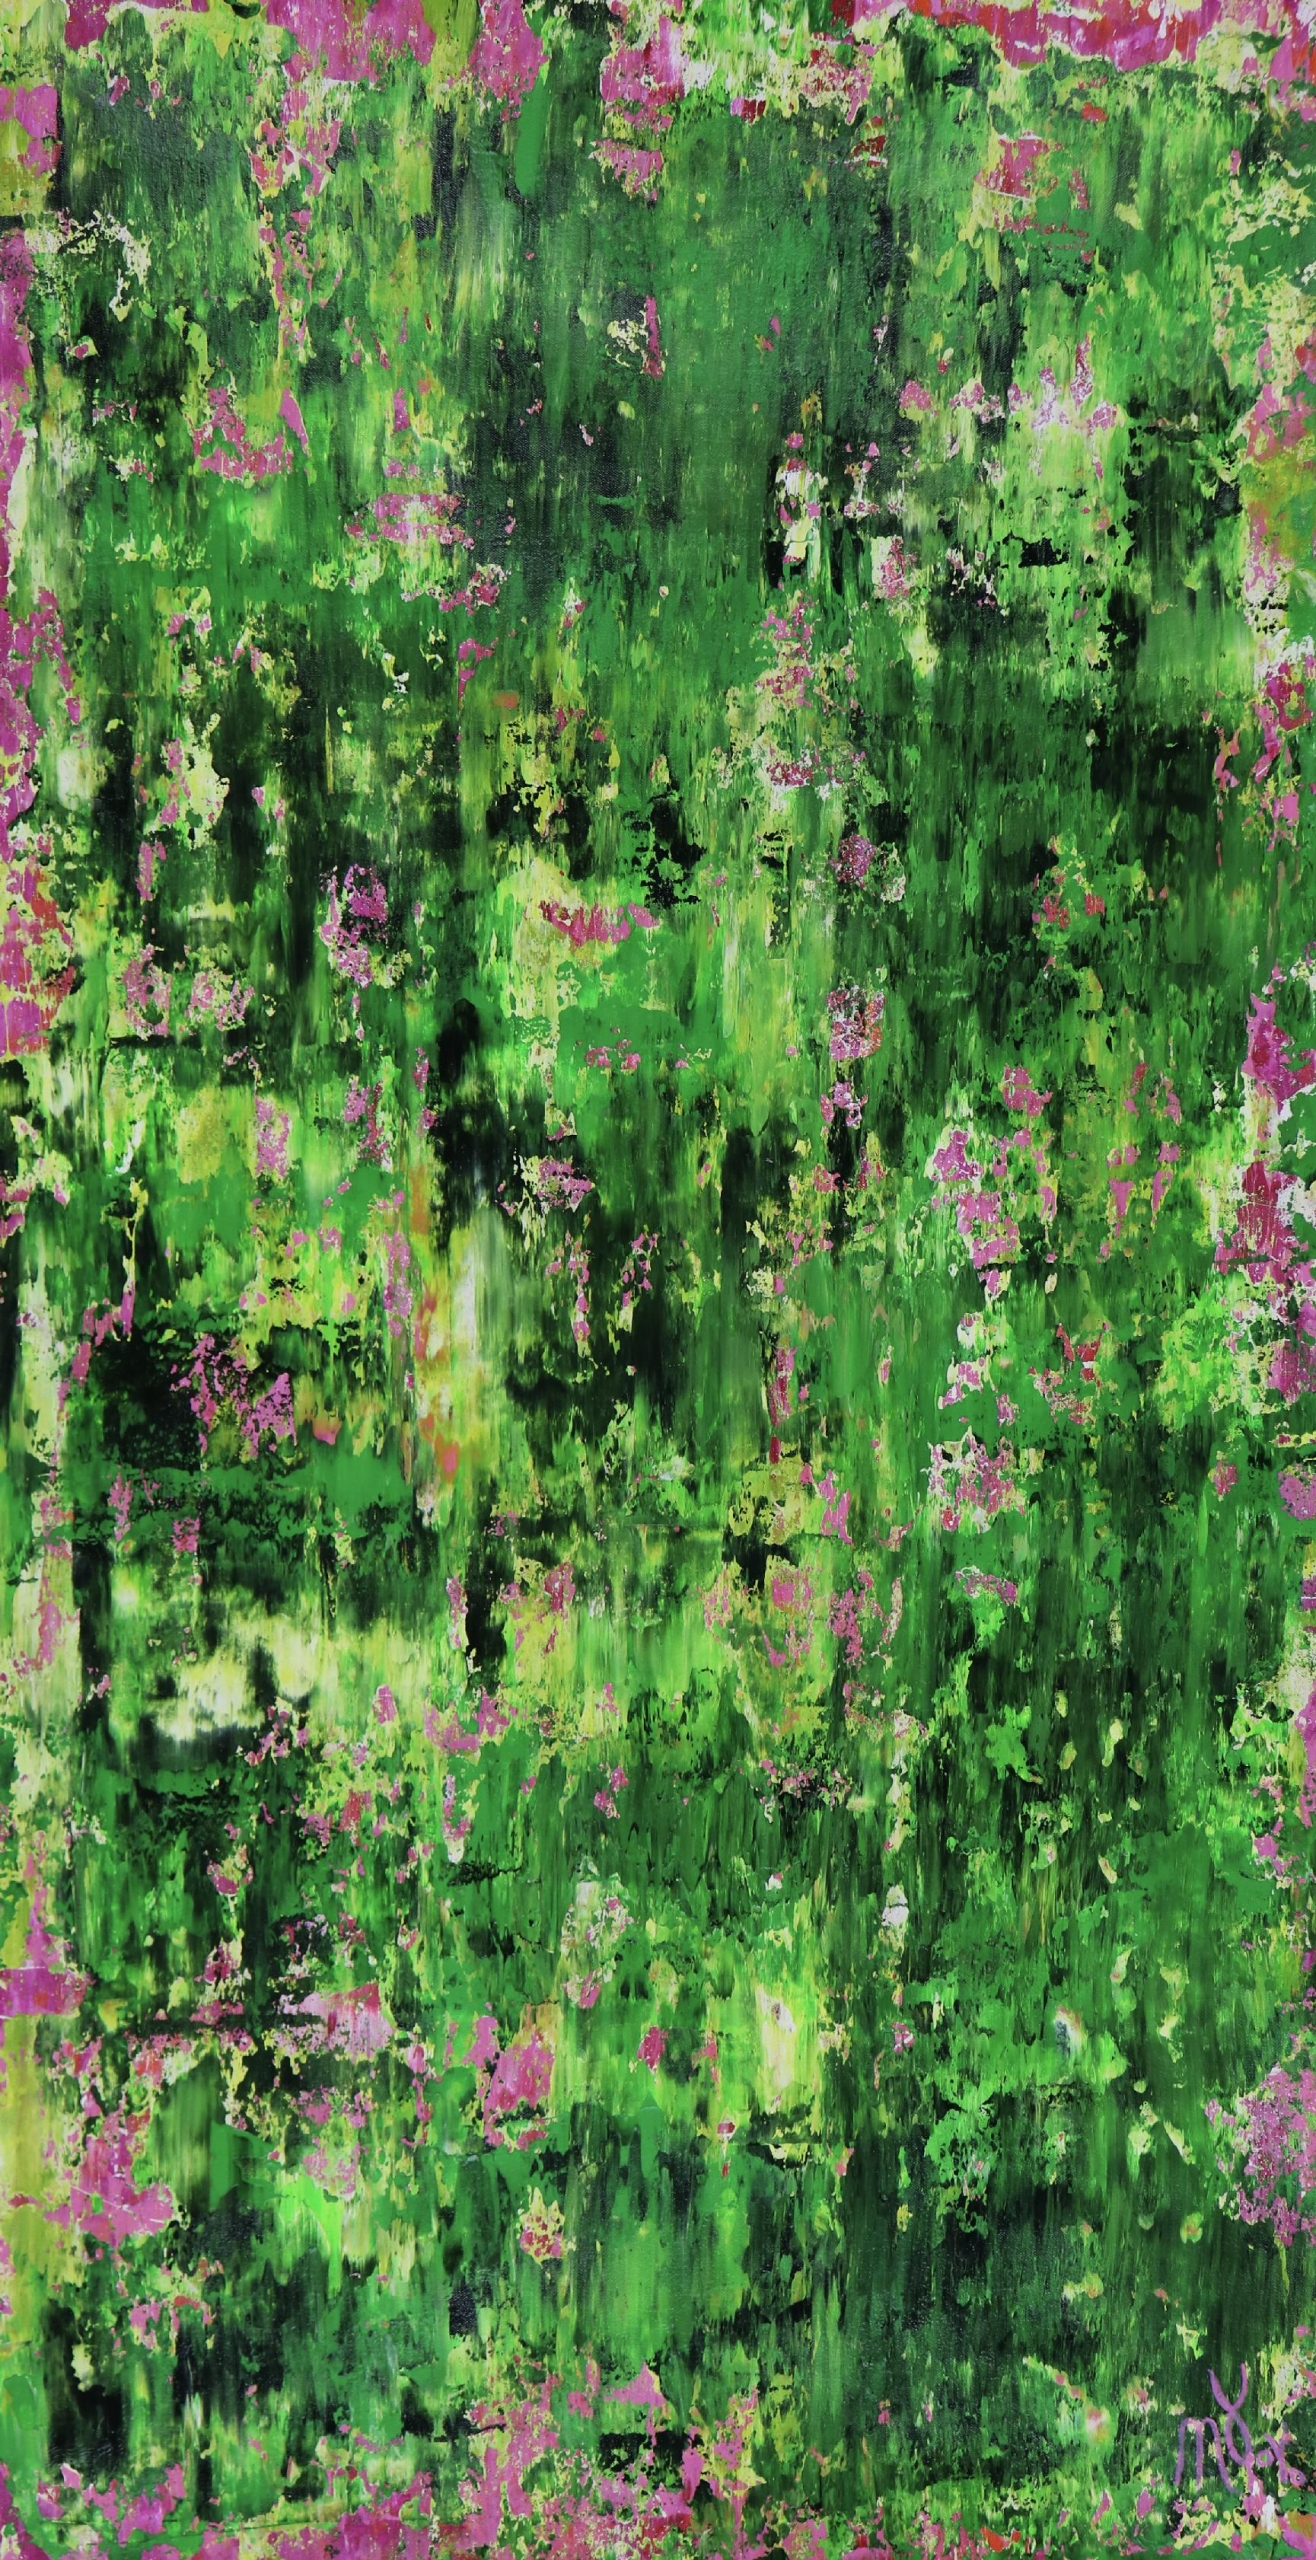 Full Canvas - Room View - Verdor (A Romance With Green) 3 by Nestor Toro